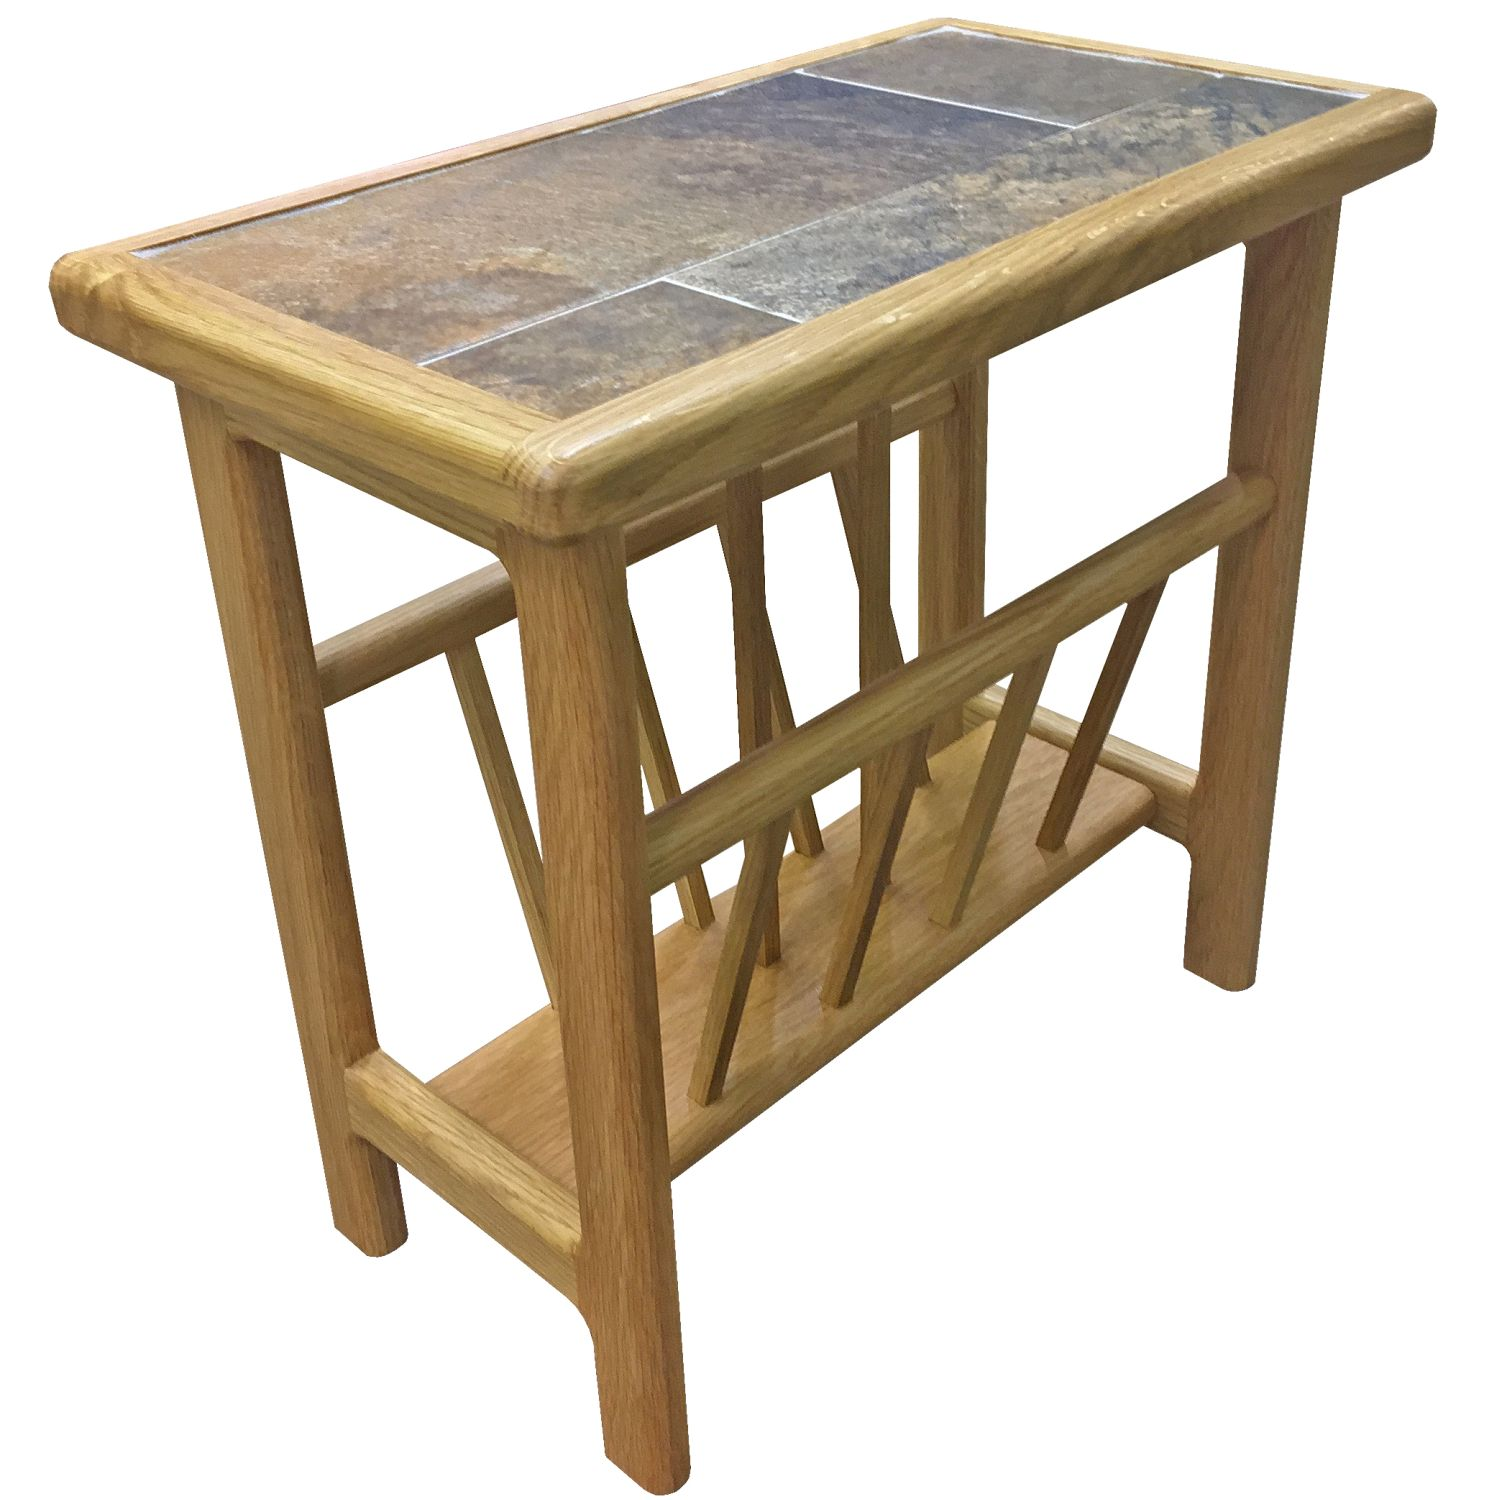 Image of Casa Autumn Tile Top Magazine Table